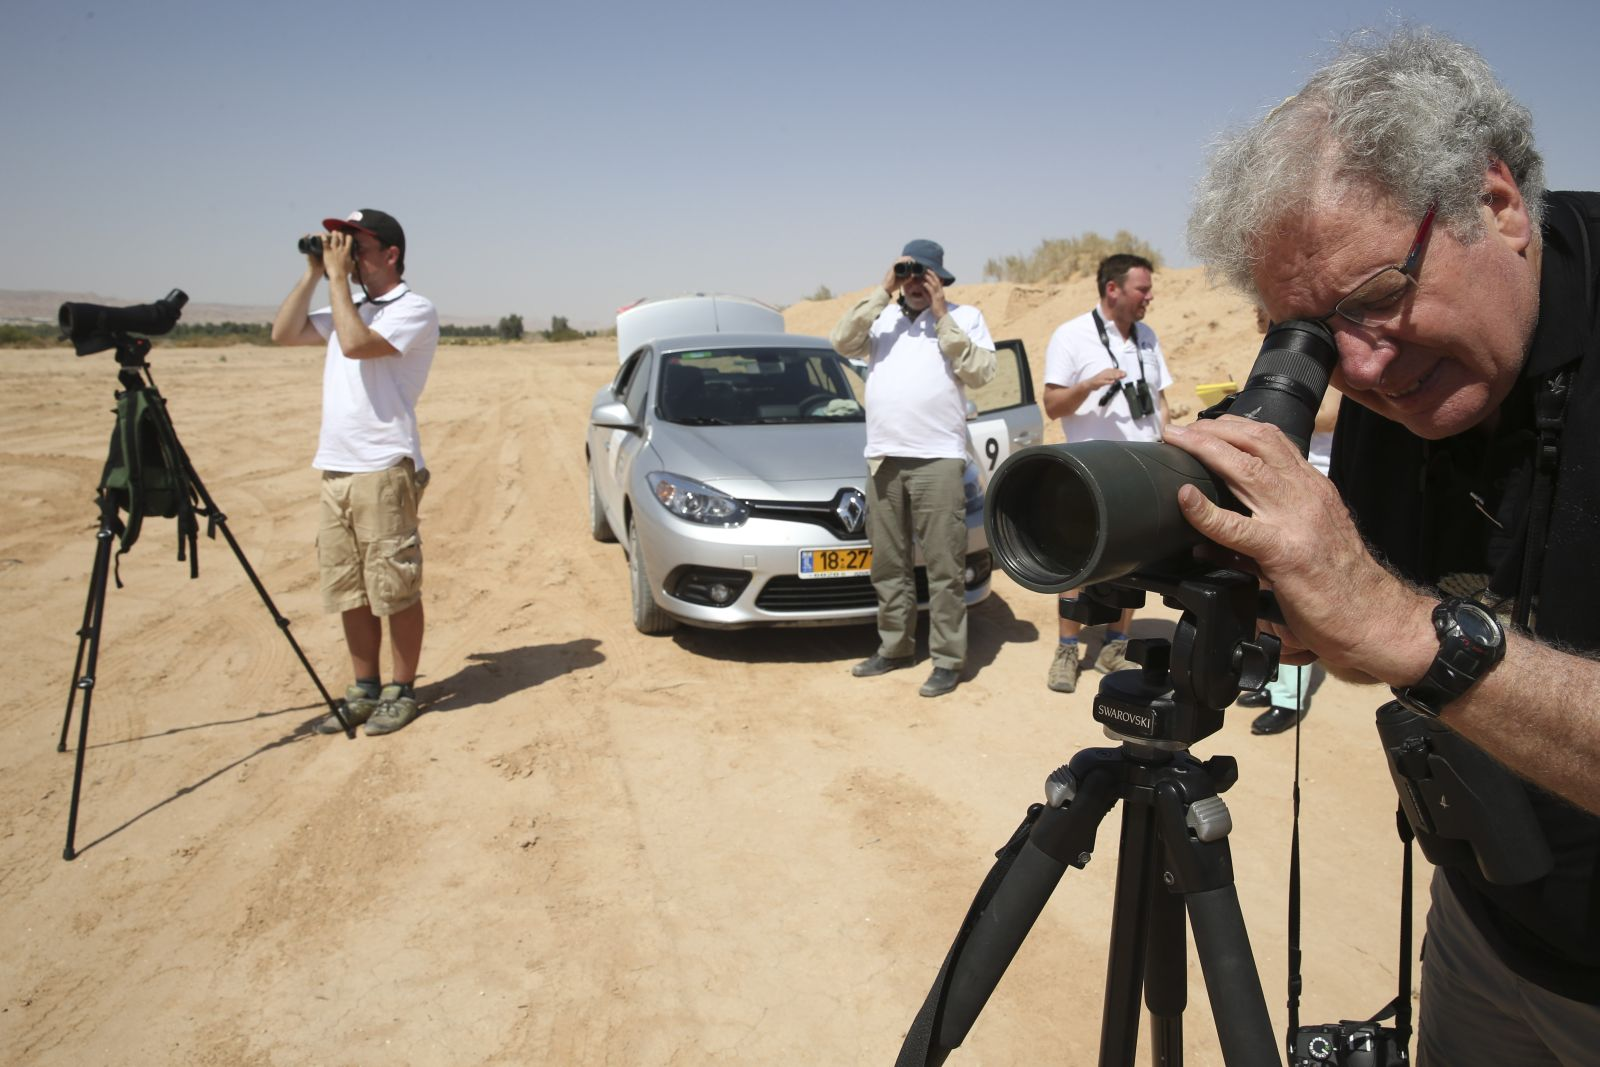 Prof. Yossi Leshem, right, director of the International Center for the Study of Bird Migration at Latrun during a 24-hour bird-spotting competition in Eilat in 2014. More than 100 birdwatchers from around the world participated. Photo by Nati Shohat/FLASH90